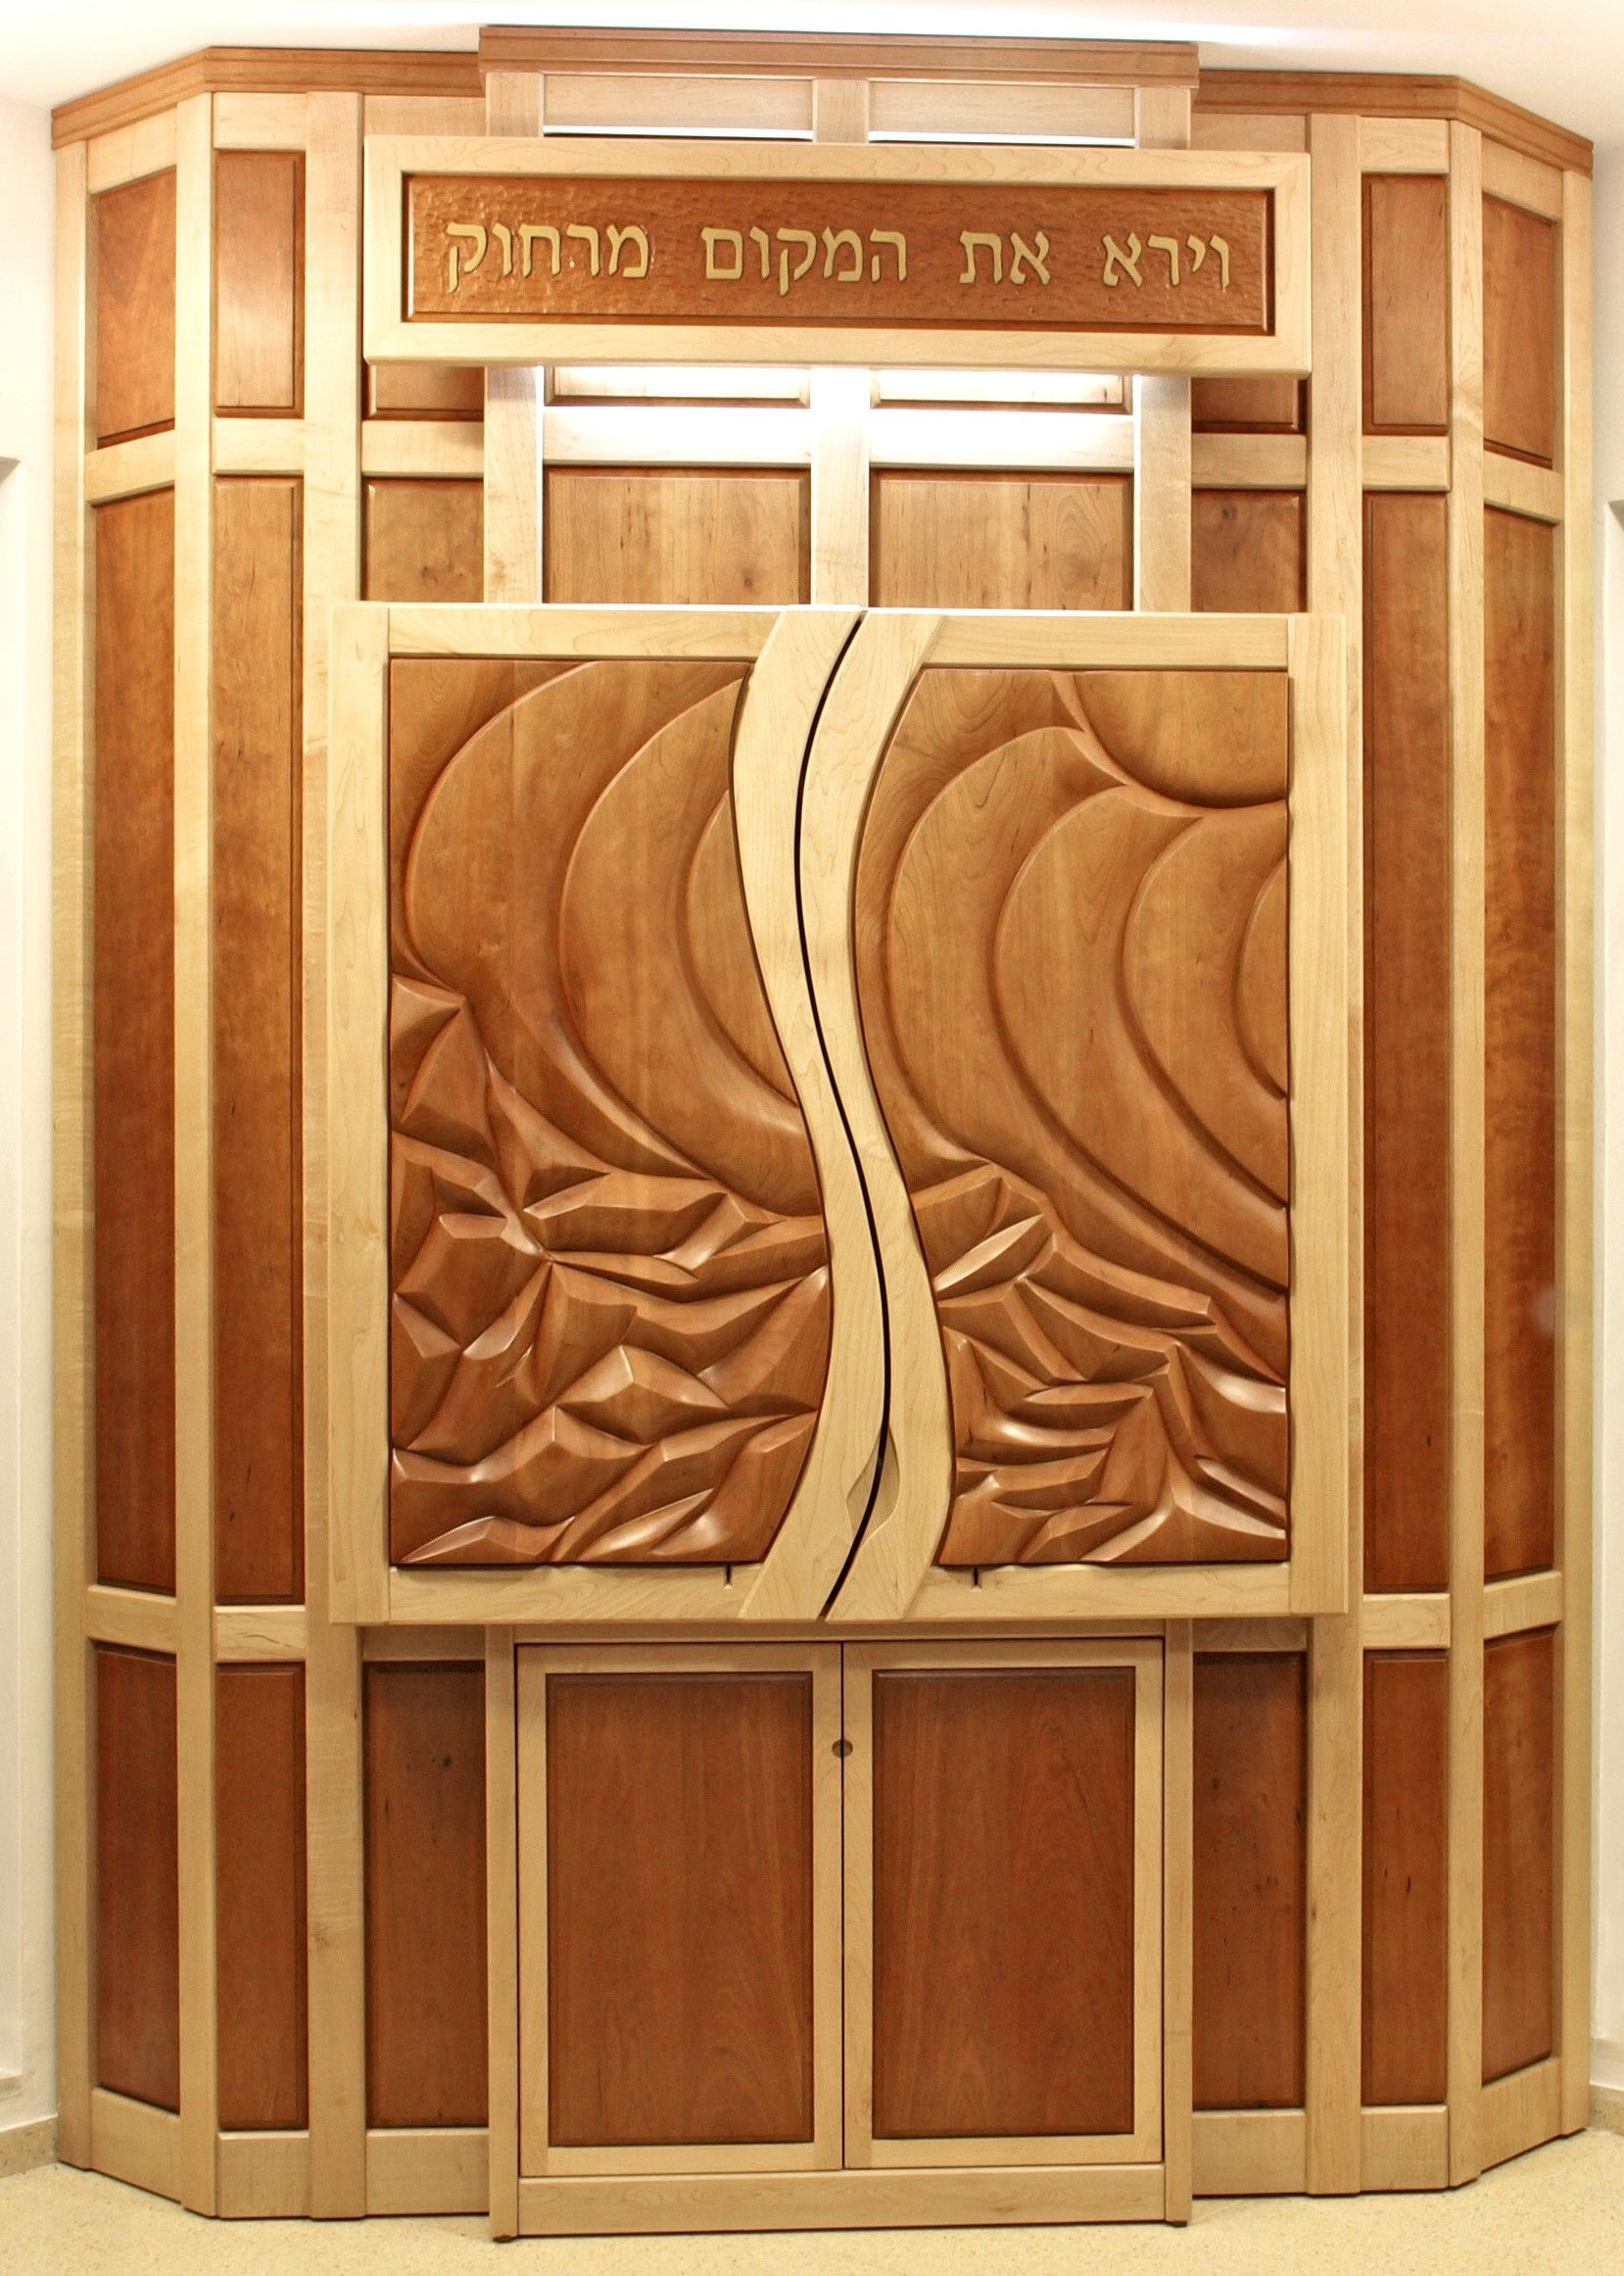 Among His Works, Custome Made Designer Furniture, Synagogue Furniture, Such  As Aronot Kodesh And Wood Art (wood Sculptures).